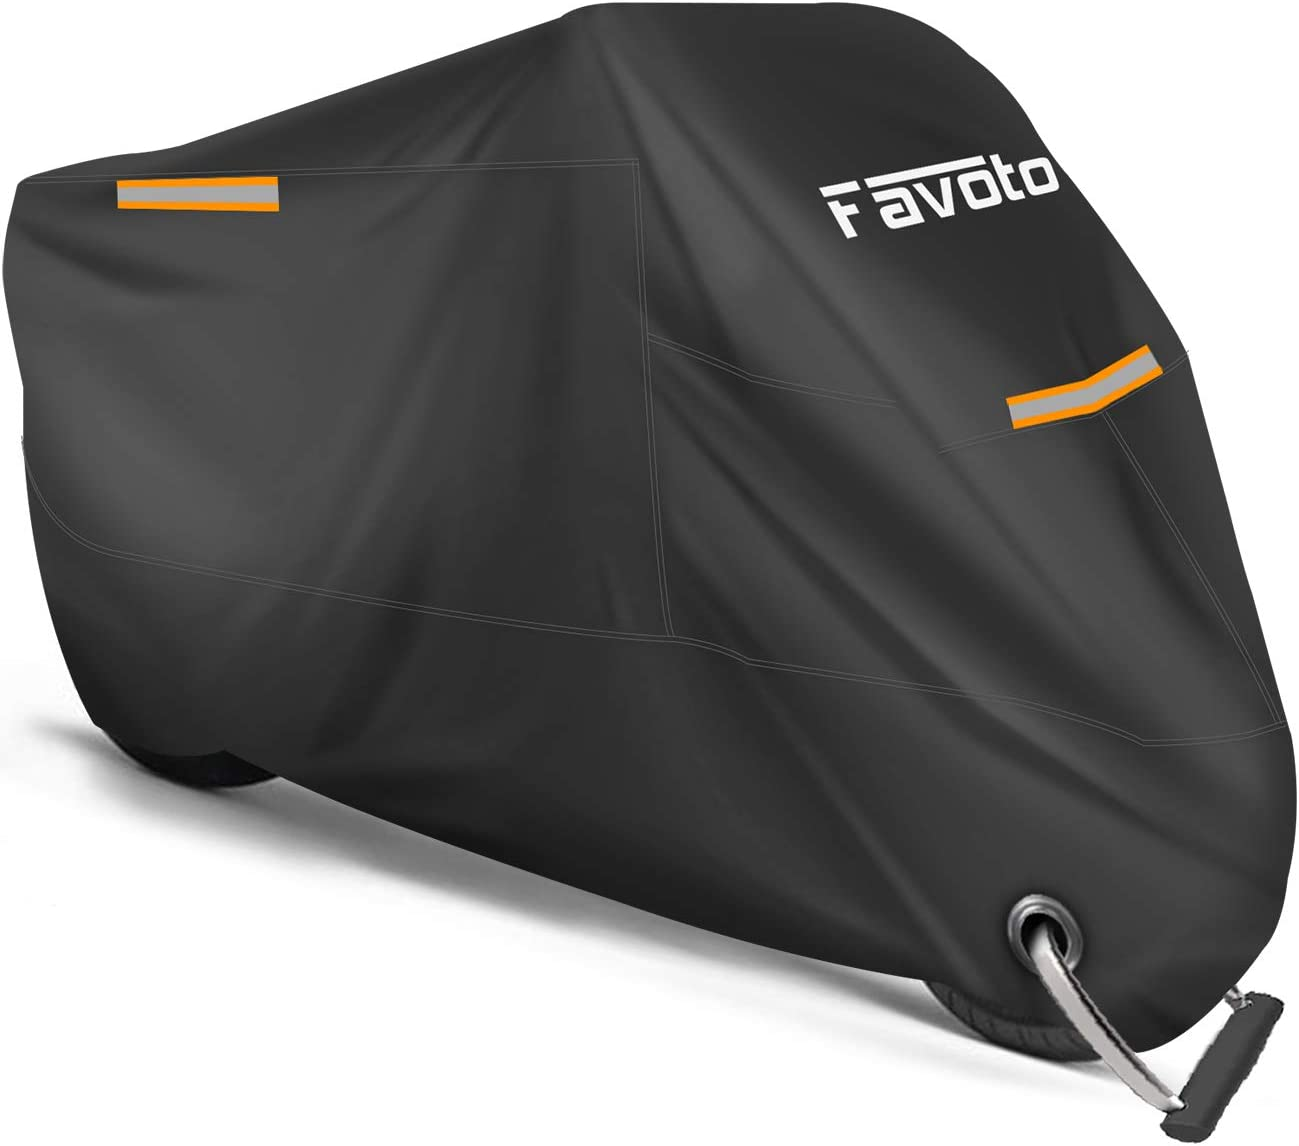 Premium Heavy Duty Outdoor Motorcycle Cover Heat Resistant Lockable fabric that is Durable /& Long Lasting Lrg, Red Fits Sportbikes /& Cruisers Waterproof All Season Polyester w//Soft Screen Shield